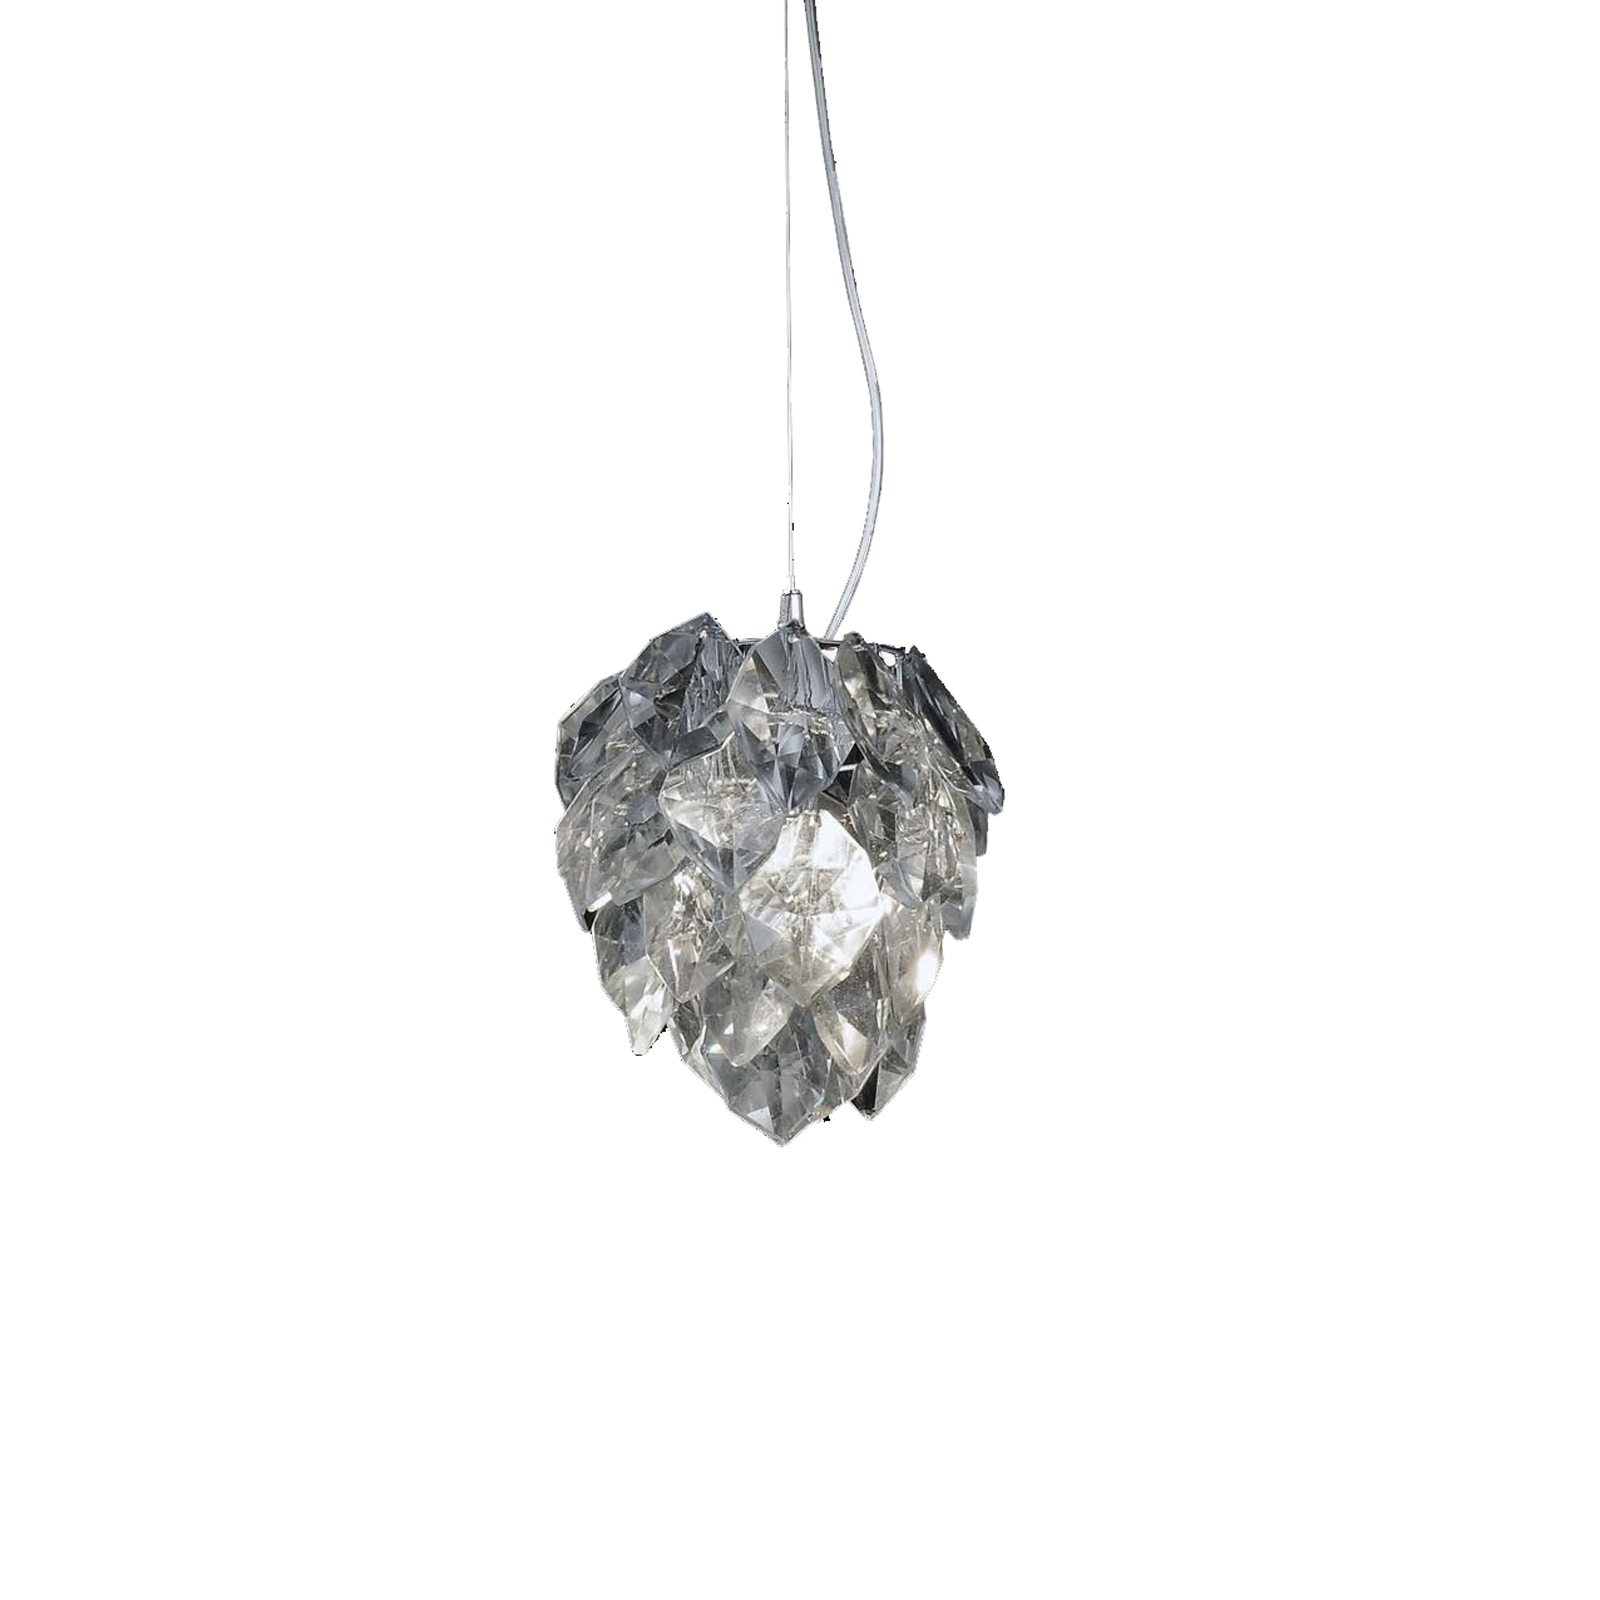 Barnacle Chandelier by Bonham & Bonham